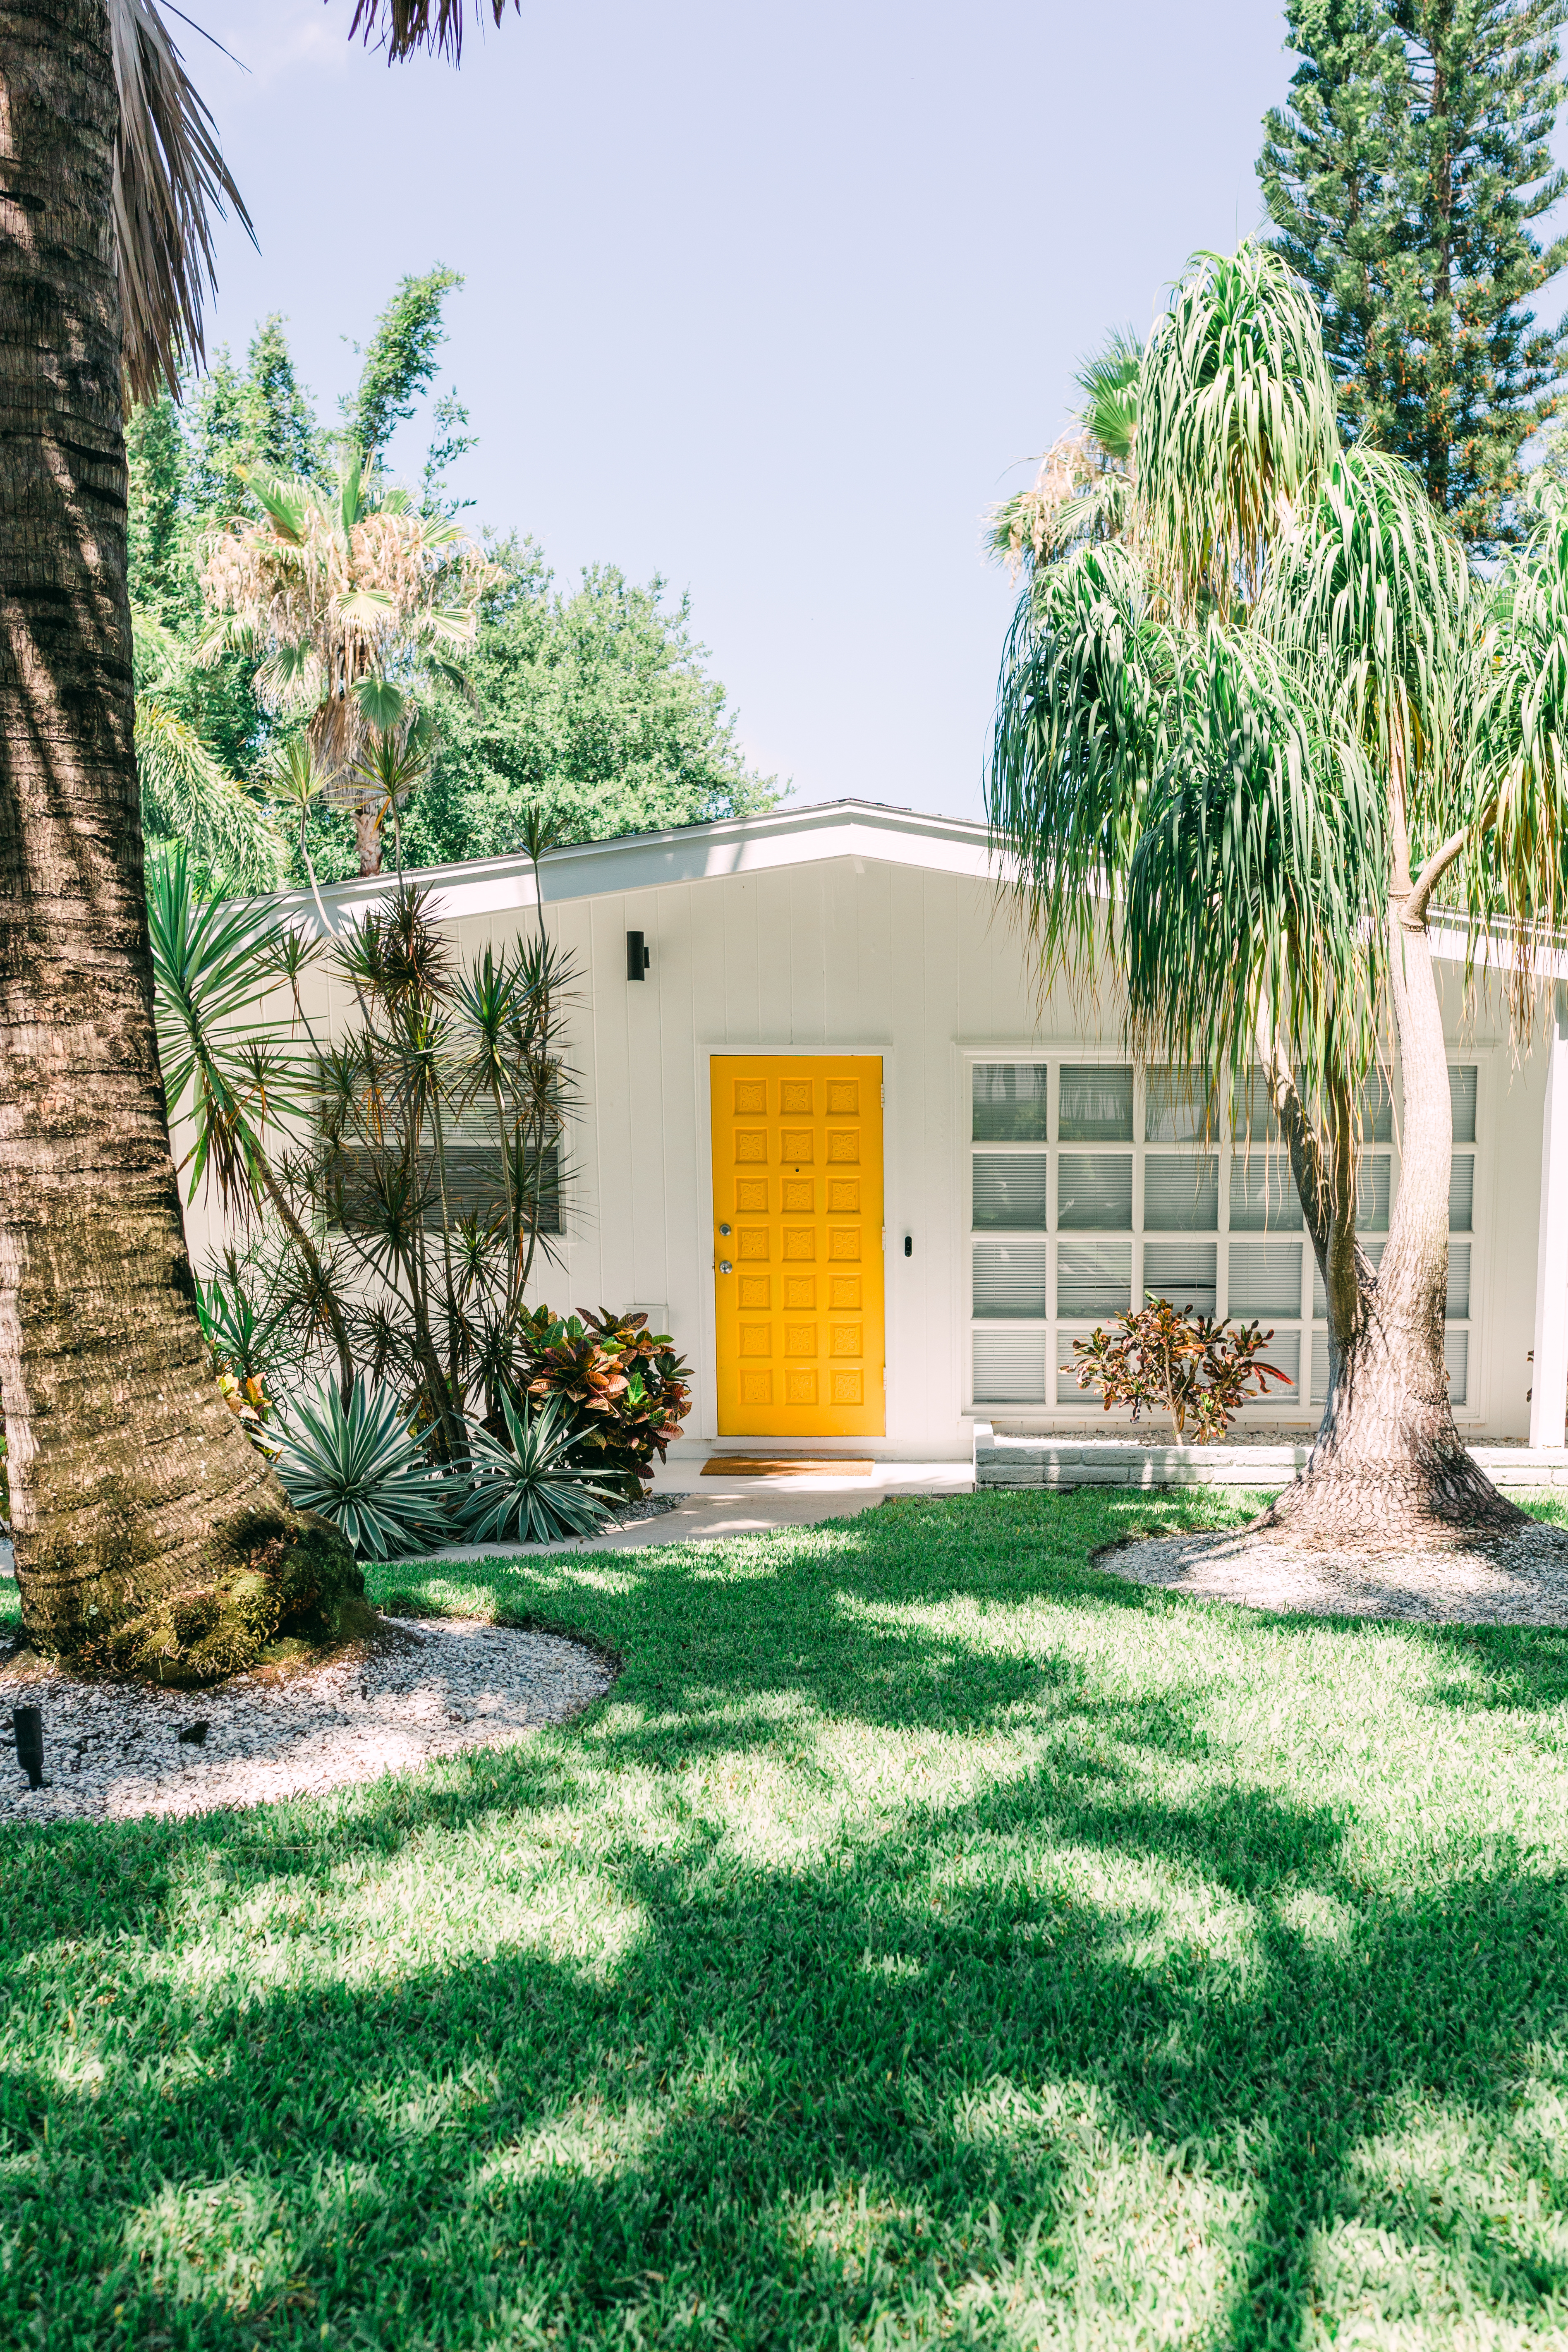 Mid-century modern home painted white with yellow front door and palm trees.